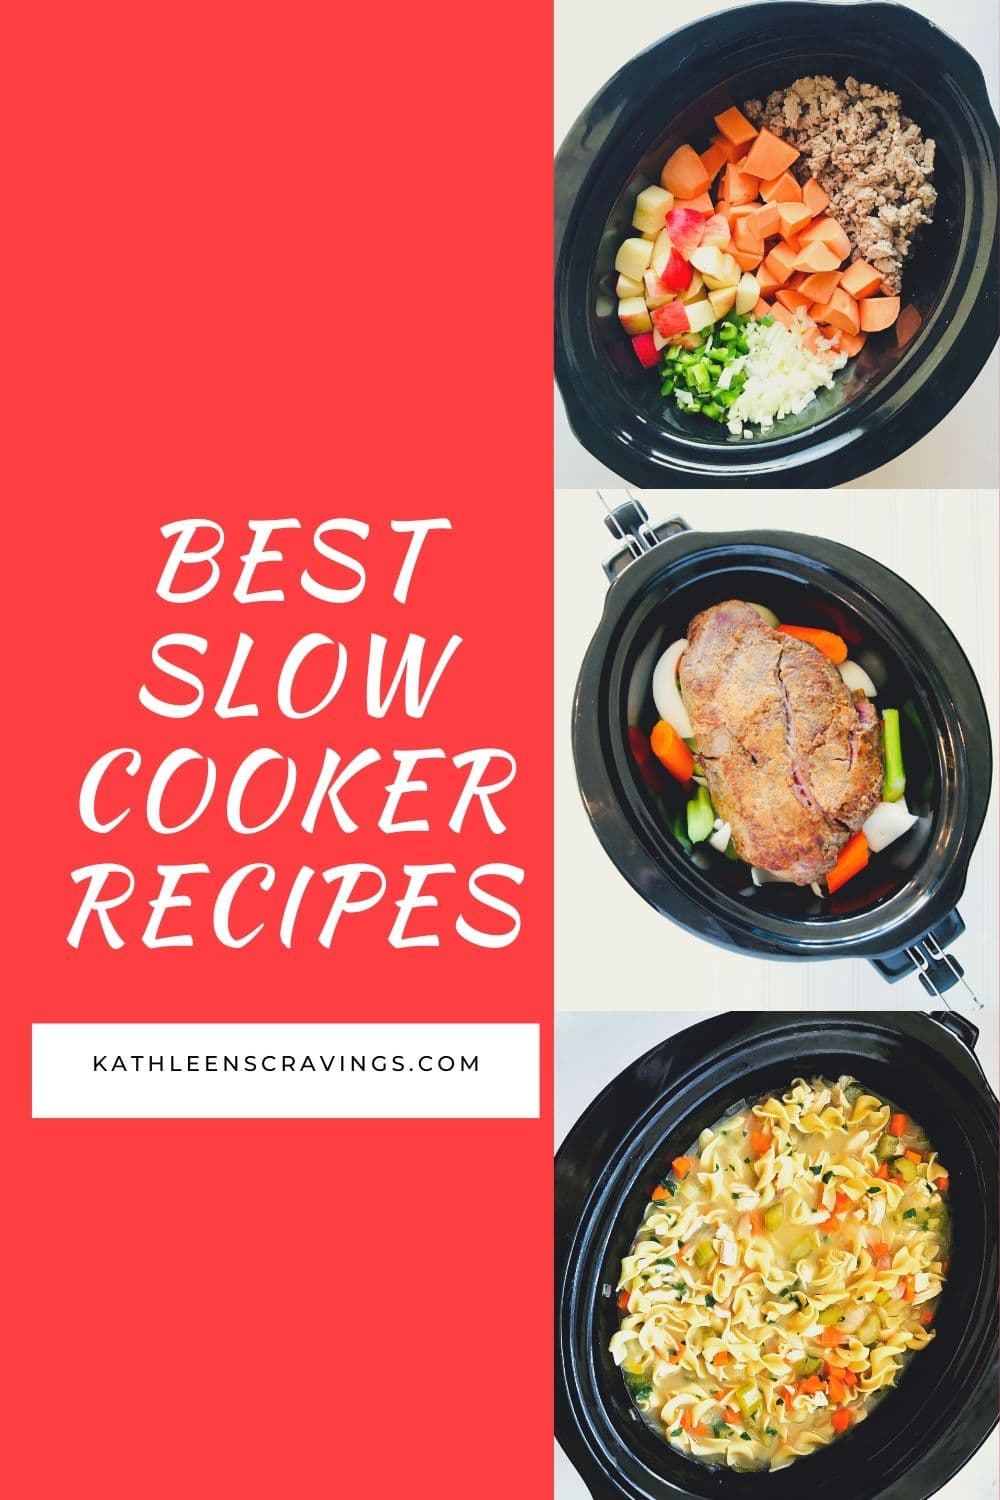 A dozen of my favorite slow cooker recipes! I love using my slow cooker year round but it's ESPECIALLY perfect in the cold winter months. Nothing beats coming home on a chilly day to a warm dinner already done in your crock pot. KathleensCravings.com #slowcooker #crockpot #slowcookerrecipes #crockpotrecipes #bestslowcooker